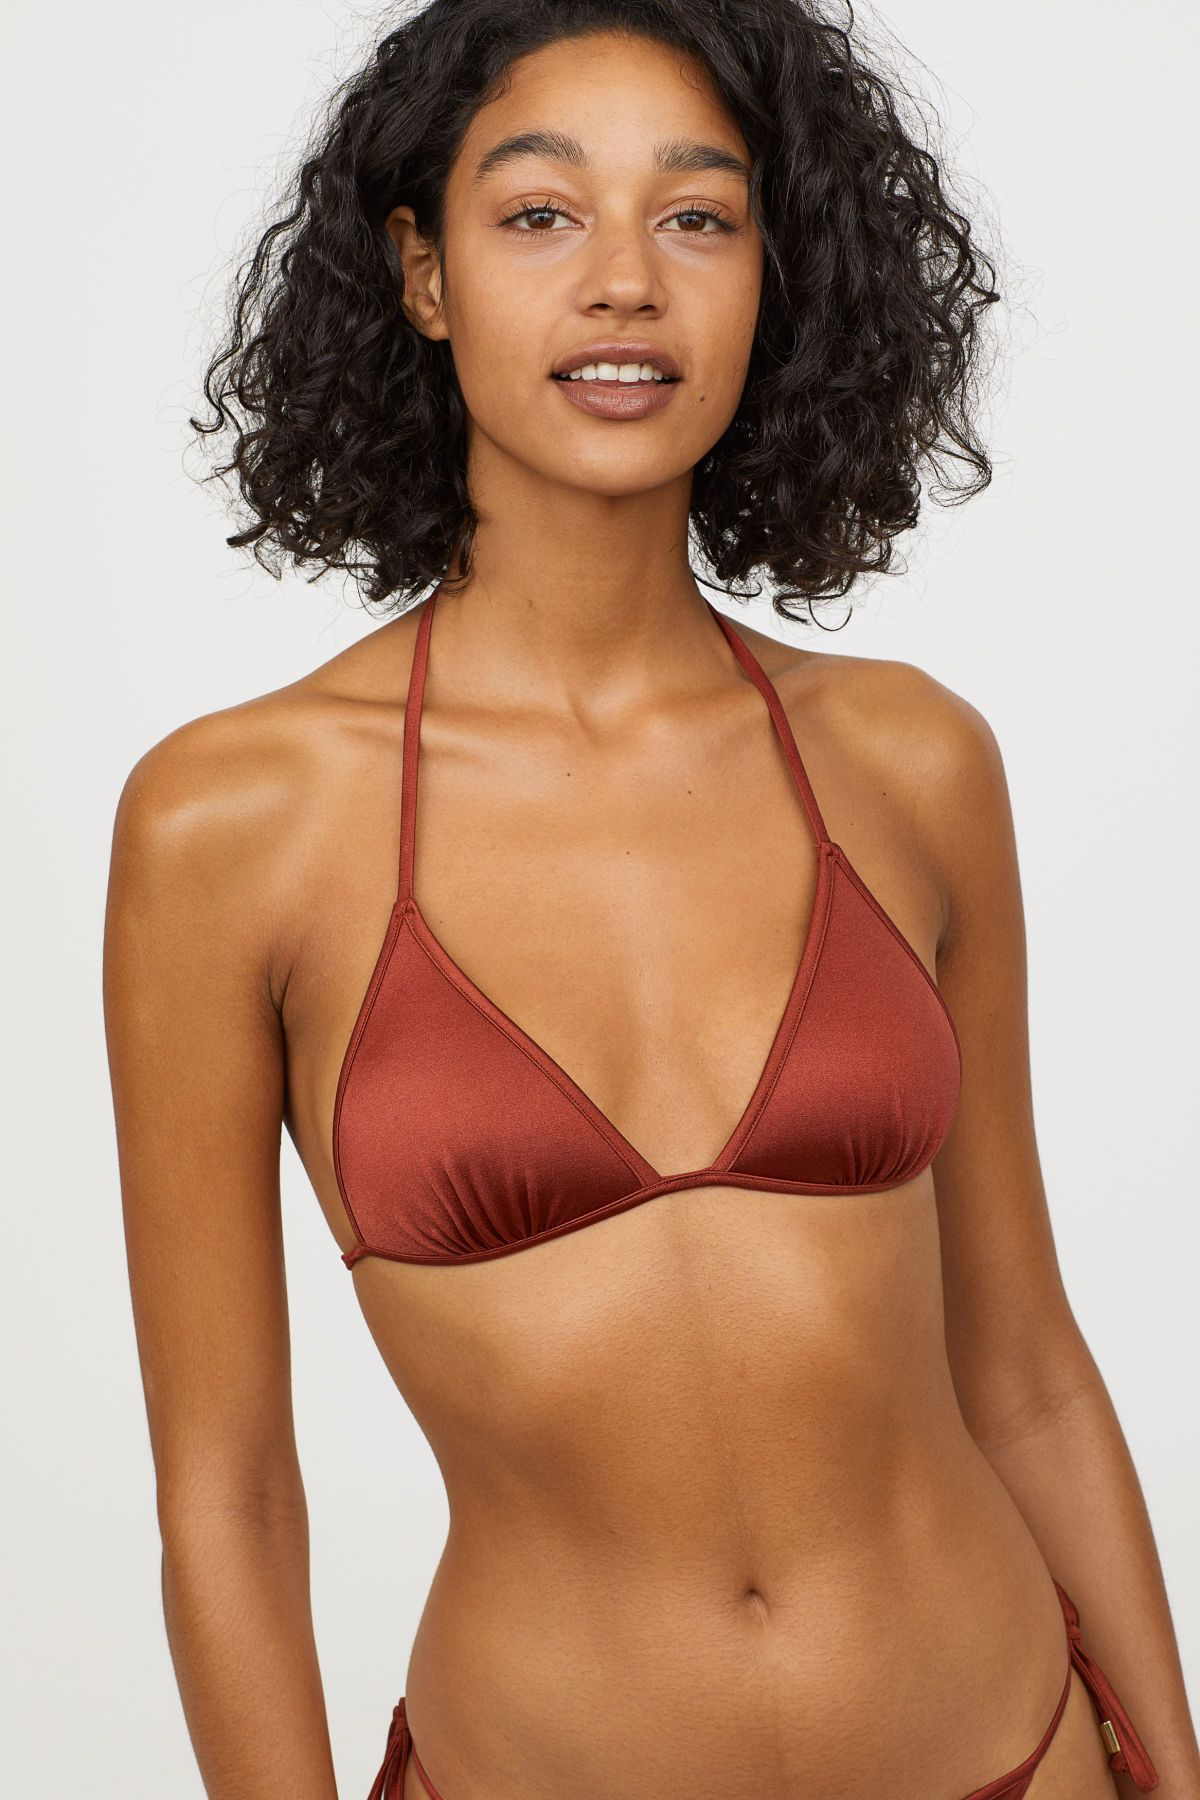 bf3f90acca15c Dark orange. Lined triangle bikini top with lightly padded, molded  underwire cups. Ties at neck and back.